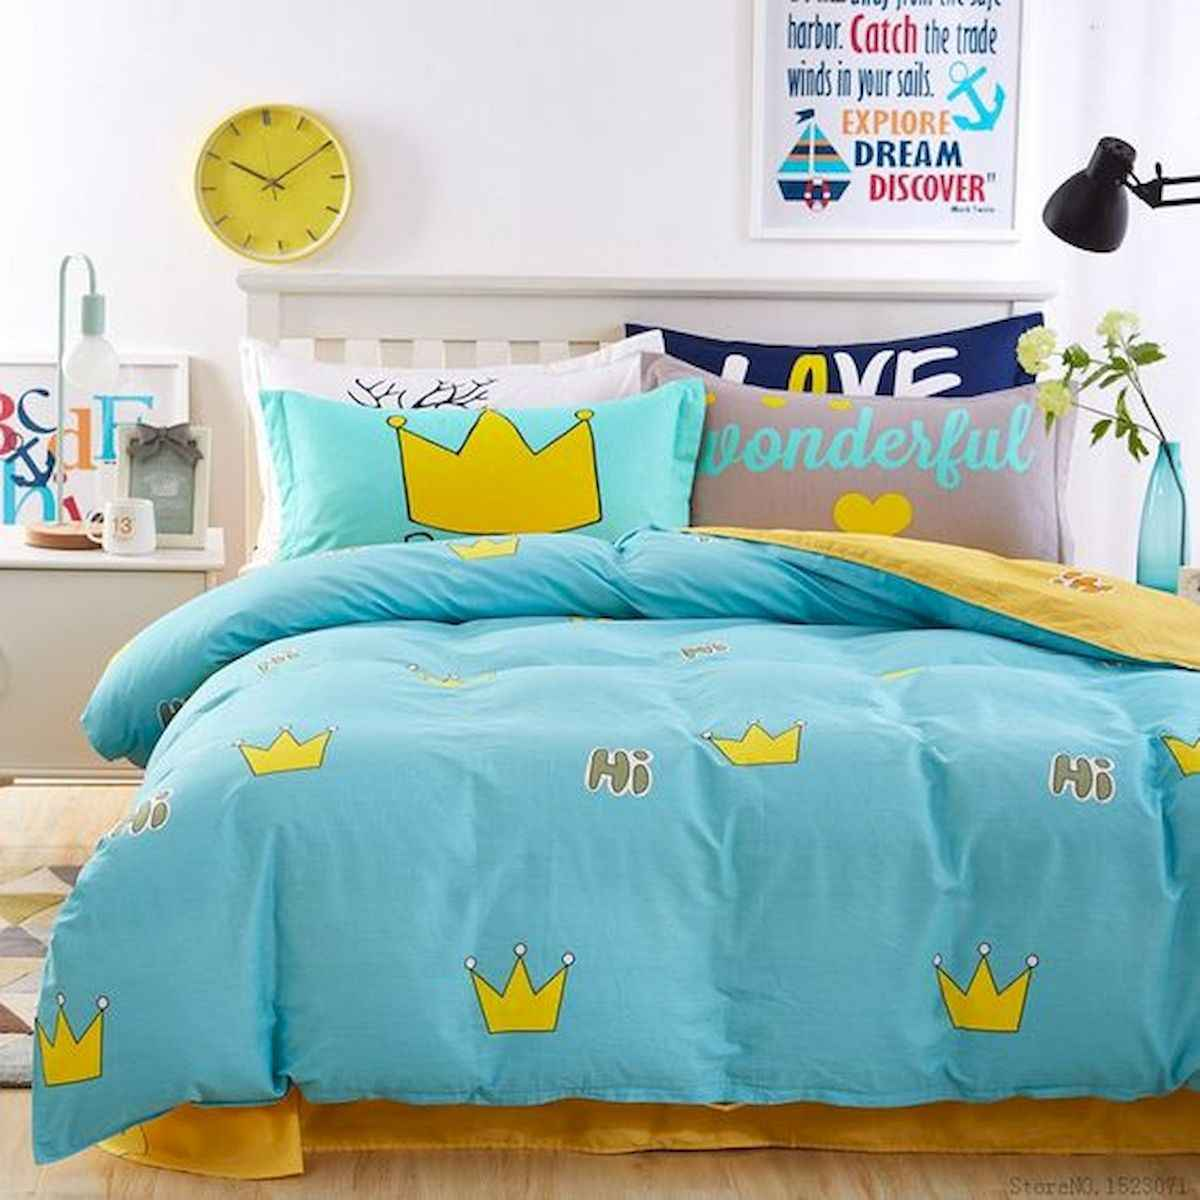 70+ Amazing Colorful Bedroom Decor Ideas And Remodel for Summer Project (4)